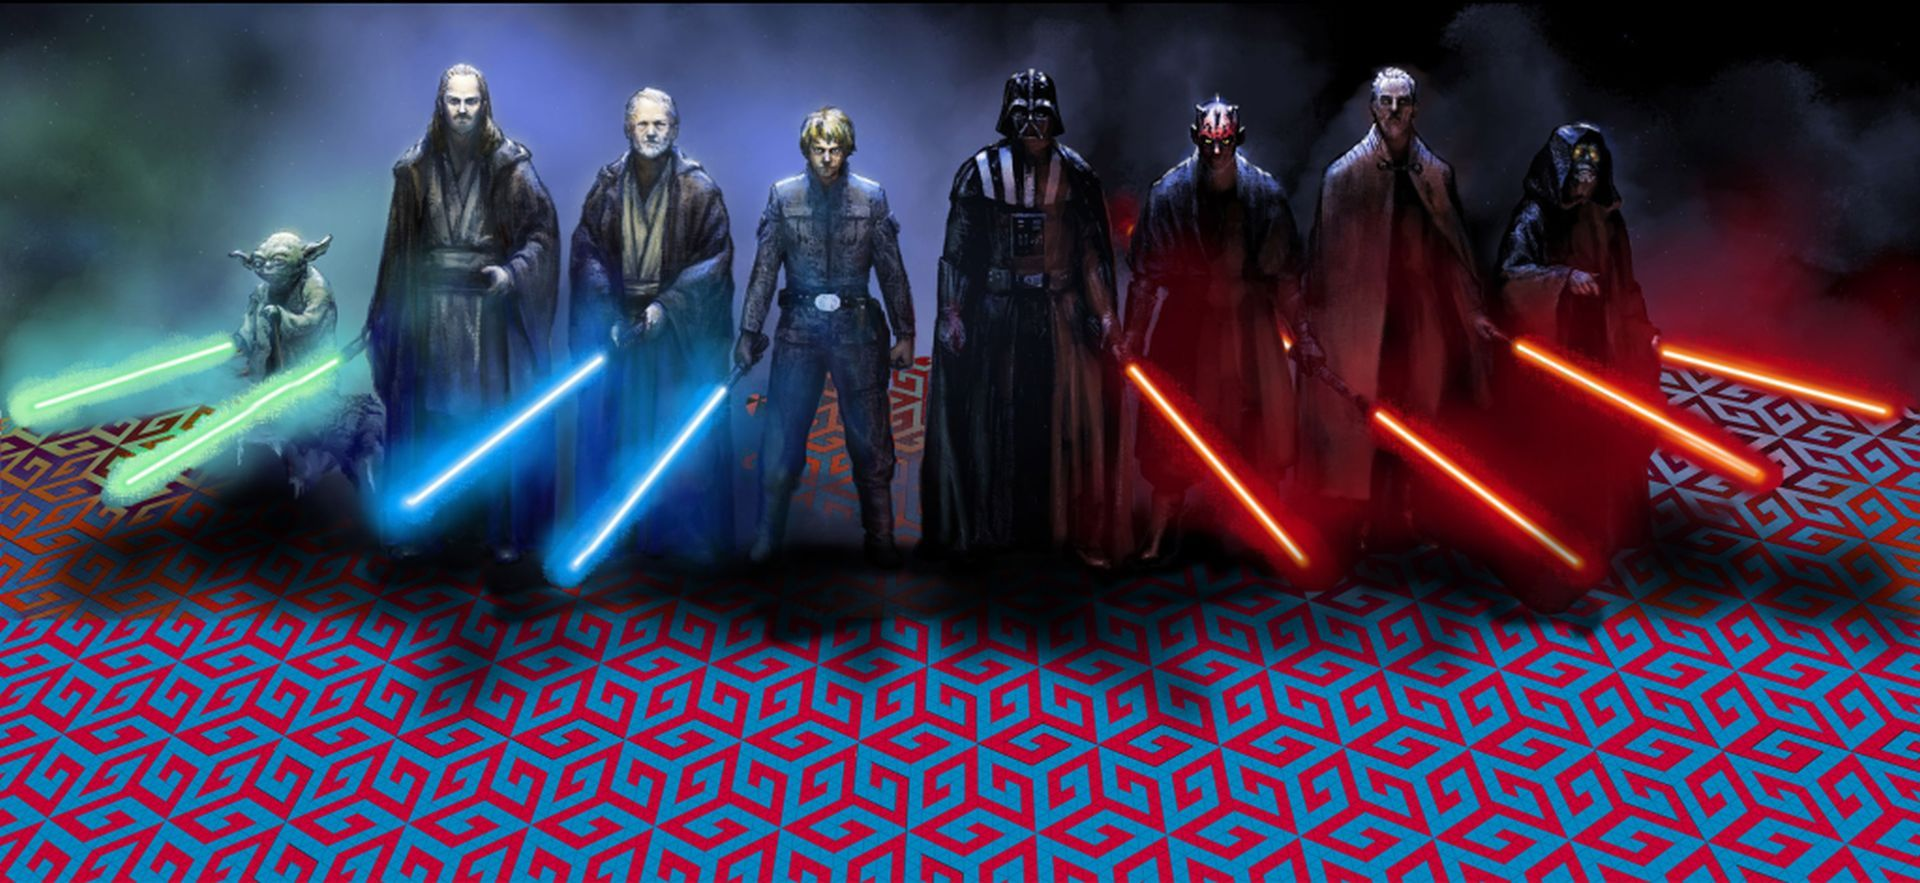 Pin By Michael Statler On Star Wars Dual Screen Wallpaper Star Wars Wallpaper Dual Monitor Wallpaper